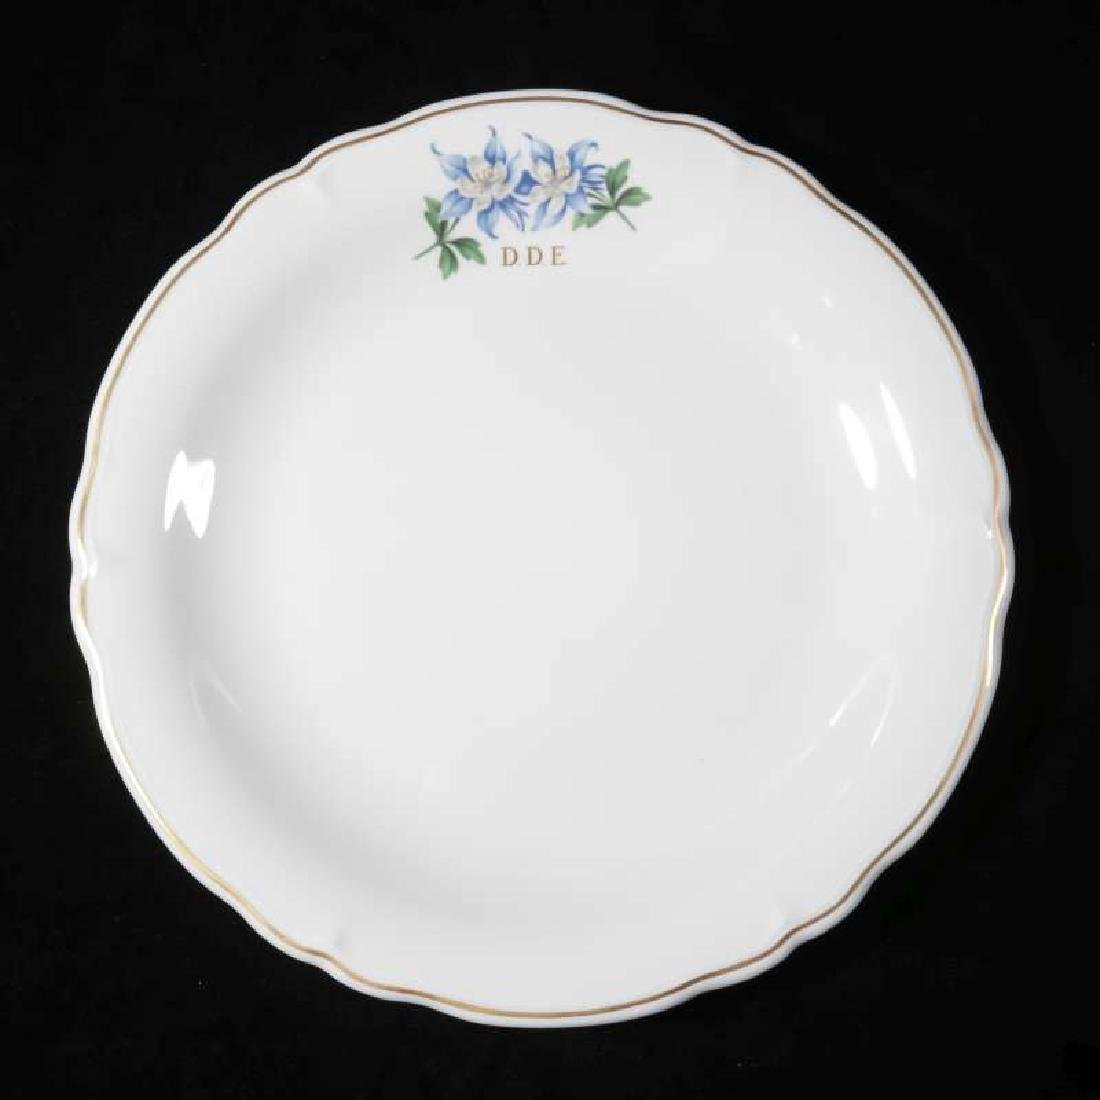 EISENHOWER'S AIR FORCE ONE COLUMBINE DINNER PLATE